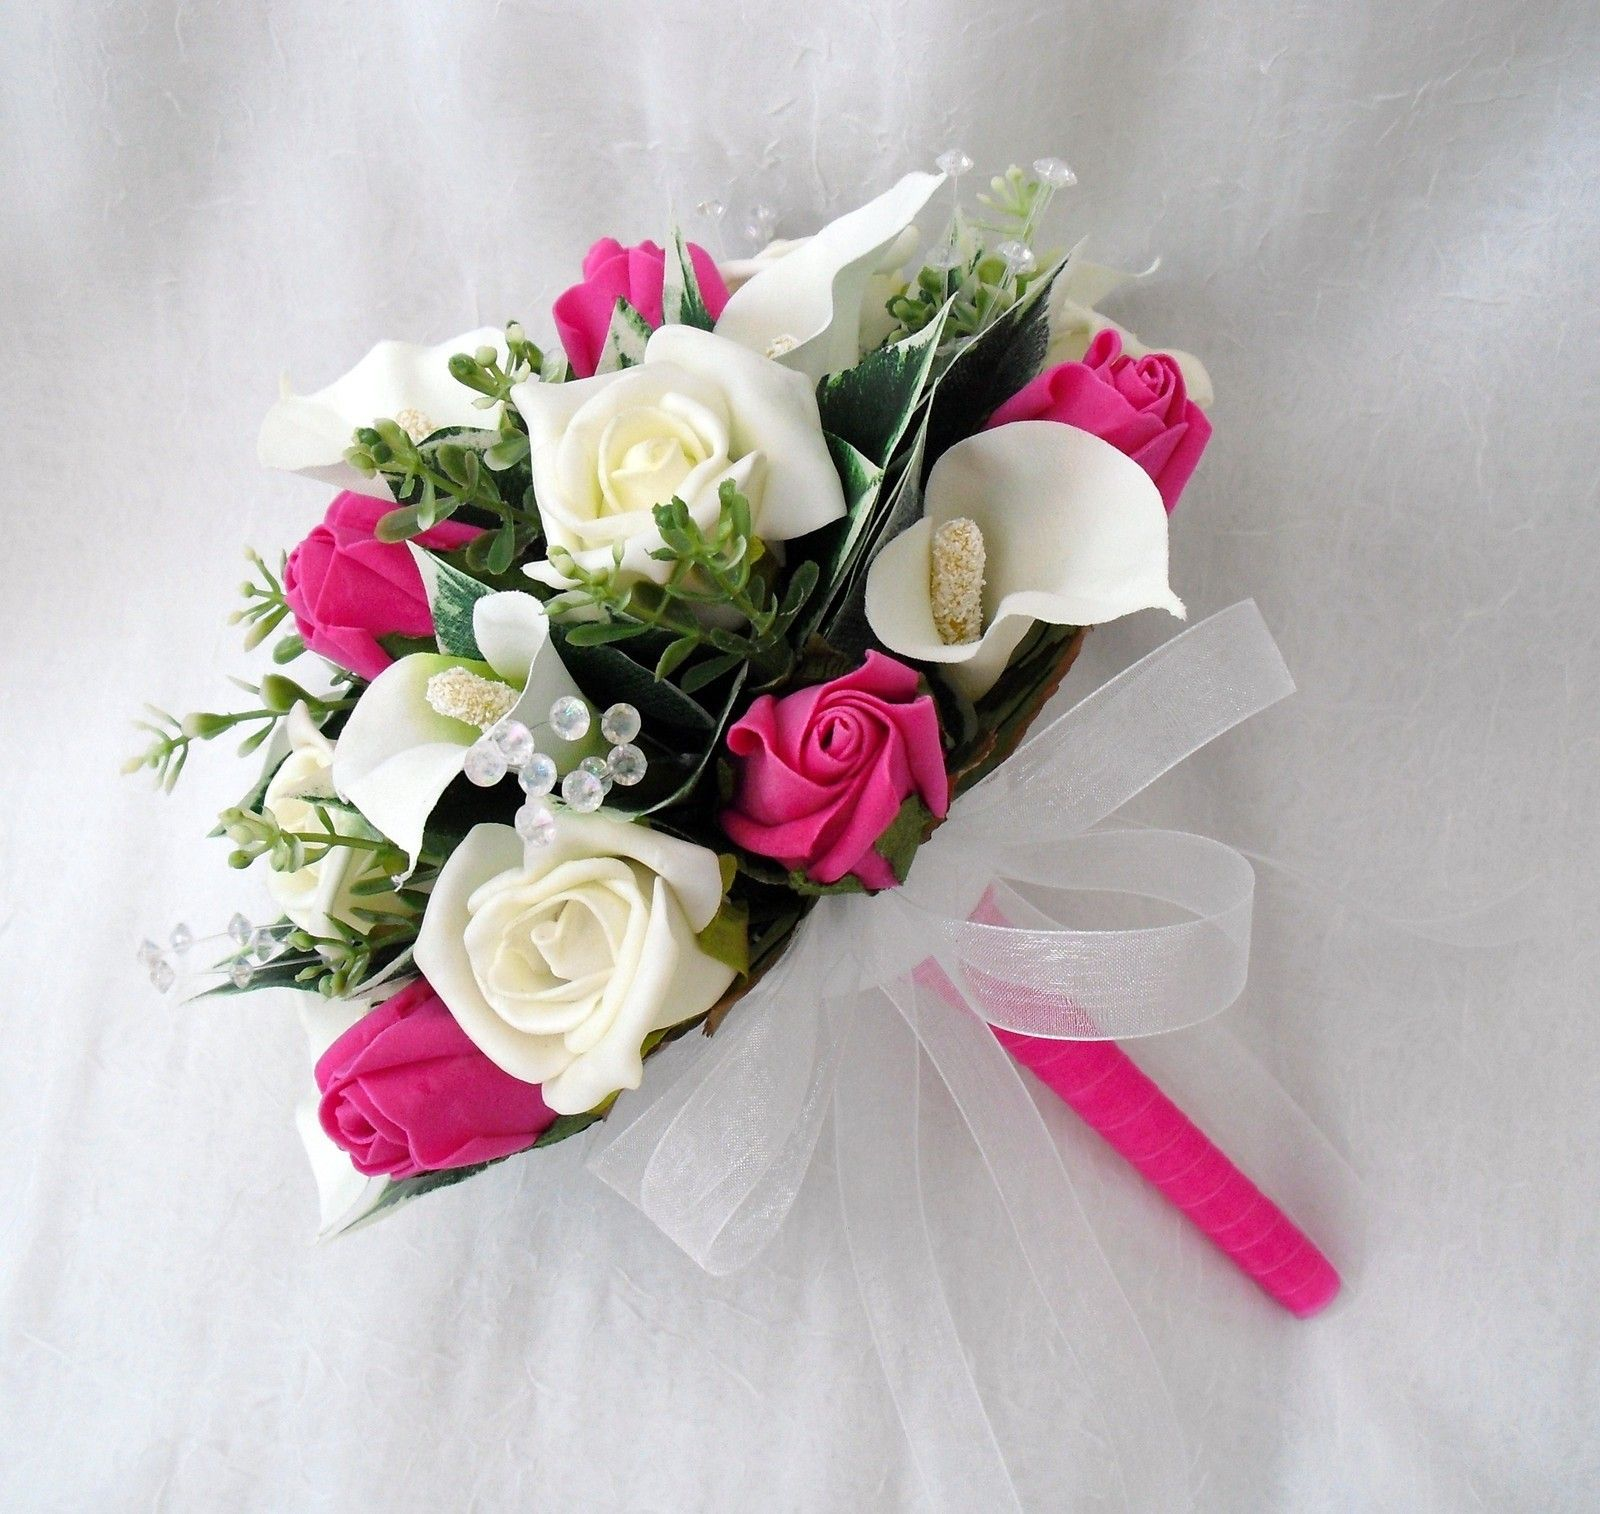 special-order-for-claire-artificial-wedding-flowers-1327-p.jpg